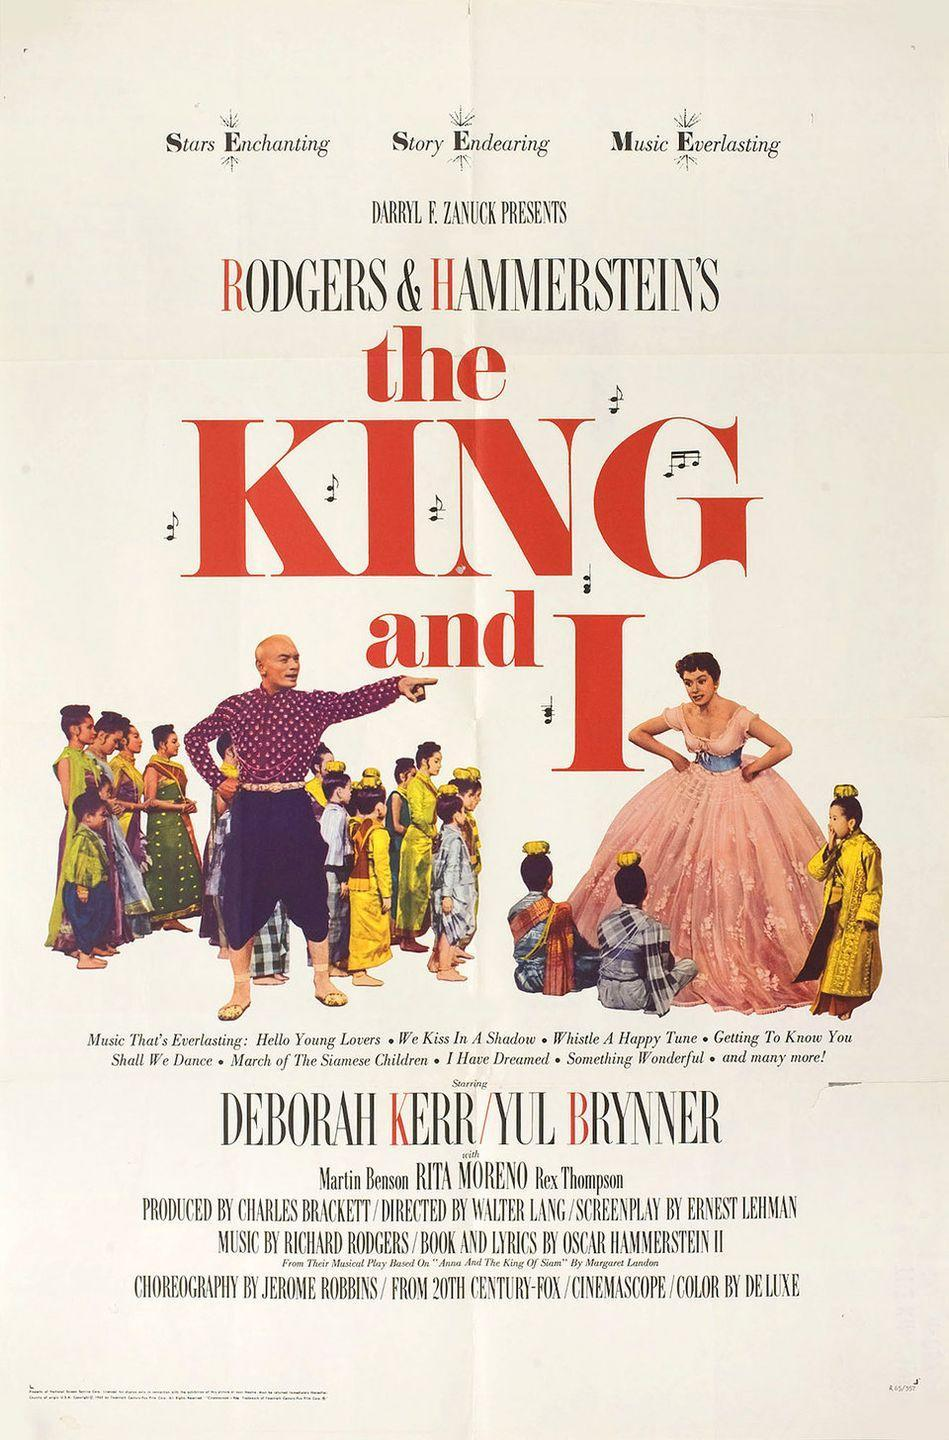 """<p>Rodgers & Hammerstein gave us gems like <em>The Sound of Music, Carousel</em>, and this story about a woman hired to be the governess (Deborah Kerr) and English tutor for the children of the King of Siam (Yul Brynner). Things get off to a rough start but you could probably imagine what happens next (if you haven't already seen it.) It's the musical you should queue up when you need a little romance in your life.</p><p><a class=""""link rapid-noclick-resp"""" href=""""https://www.amazon.com/King-I-Deborah-Kerr/dp/B00480H3UI/ref=sr_1_1?tag=syn-yahoo-20&ascsubtag=%5Bartid%7C10072.g.27734413%5Bsrc%7Cyahoo-us"""" rel=""""nofollow noopener"""" target=""""_blank"""" data-ylk=""""slk:WATCH NOW"""">WATCH NOW</a></p>"""